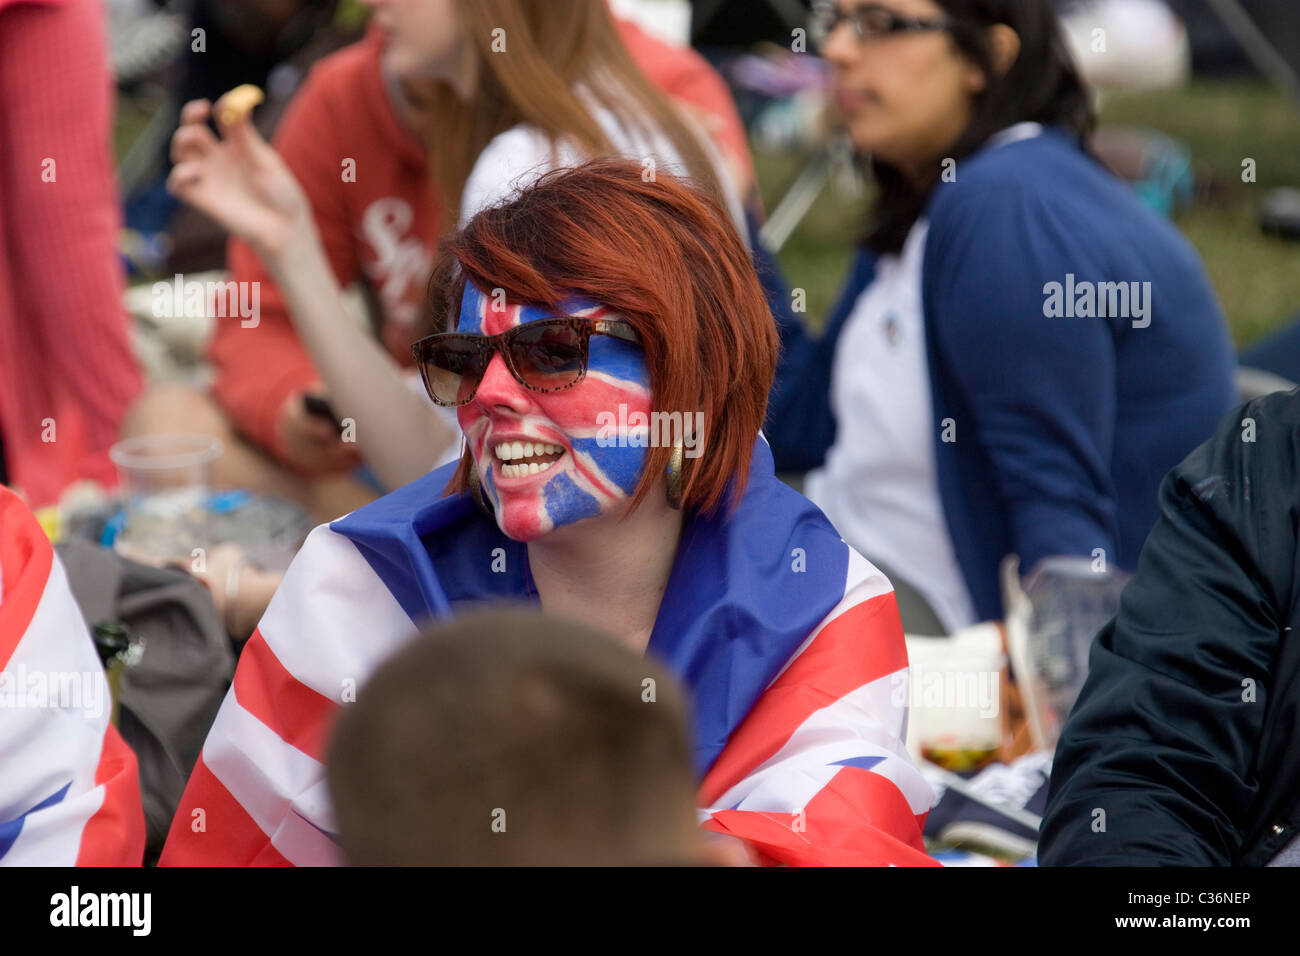 royal wedding reveller with union jack face paints draped in union jack flag hyde park - Stock Image